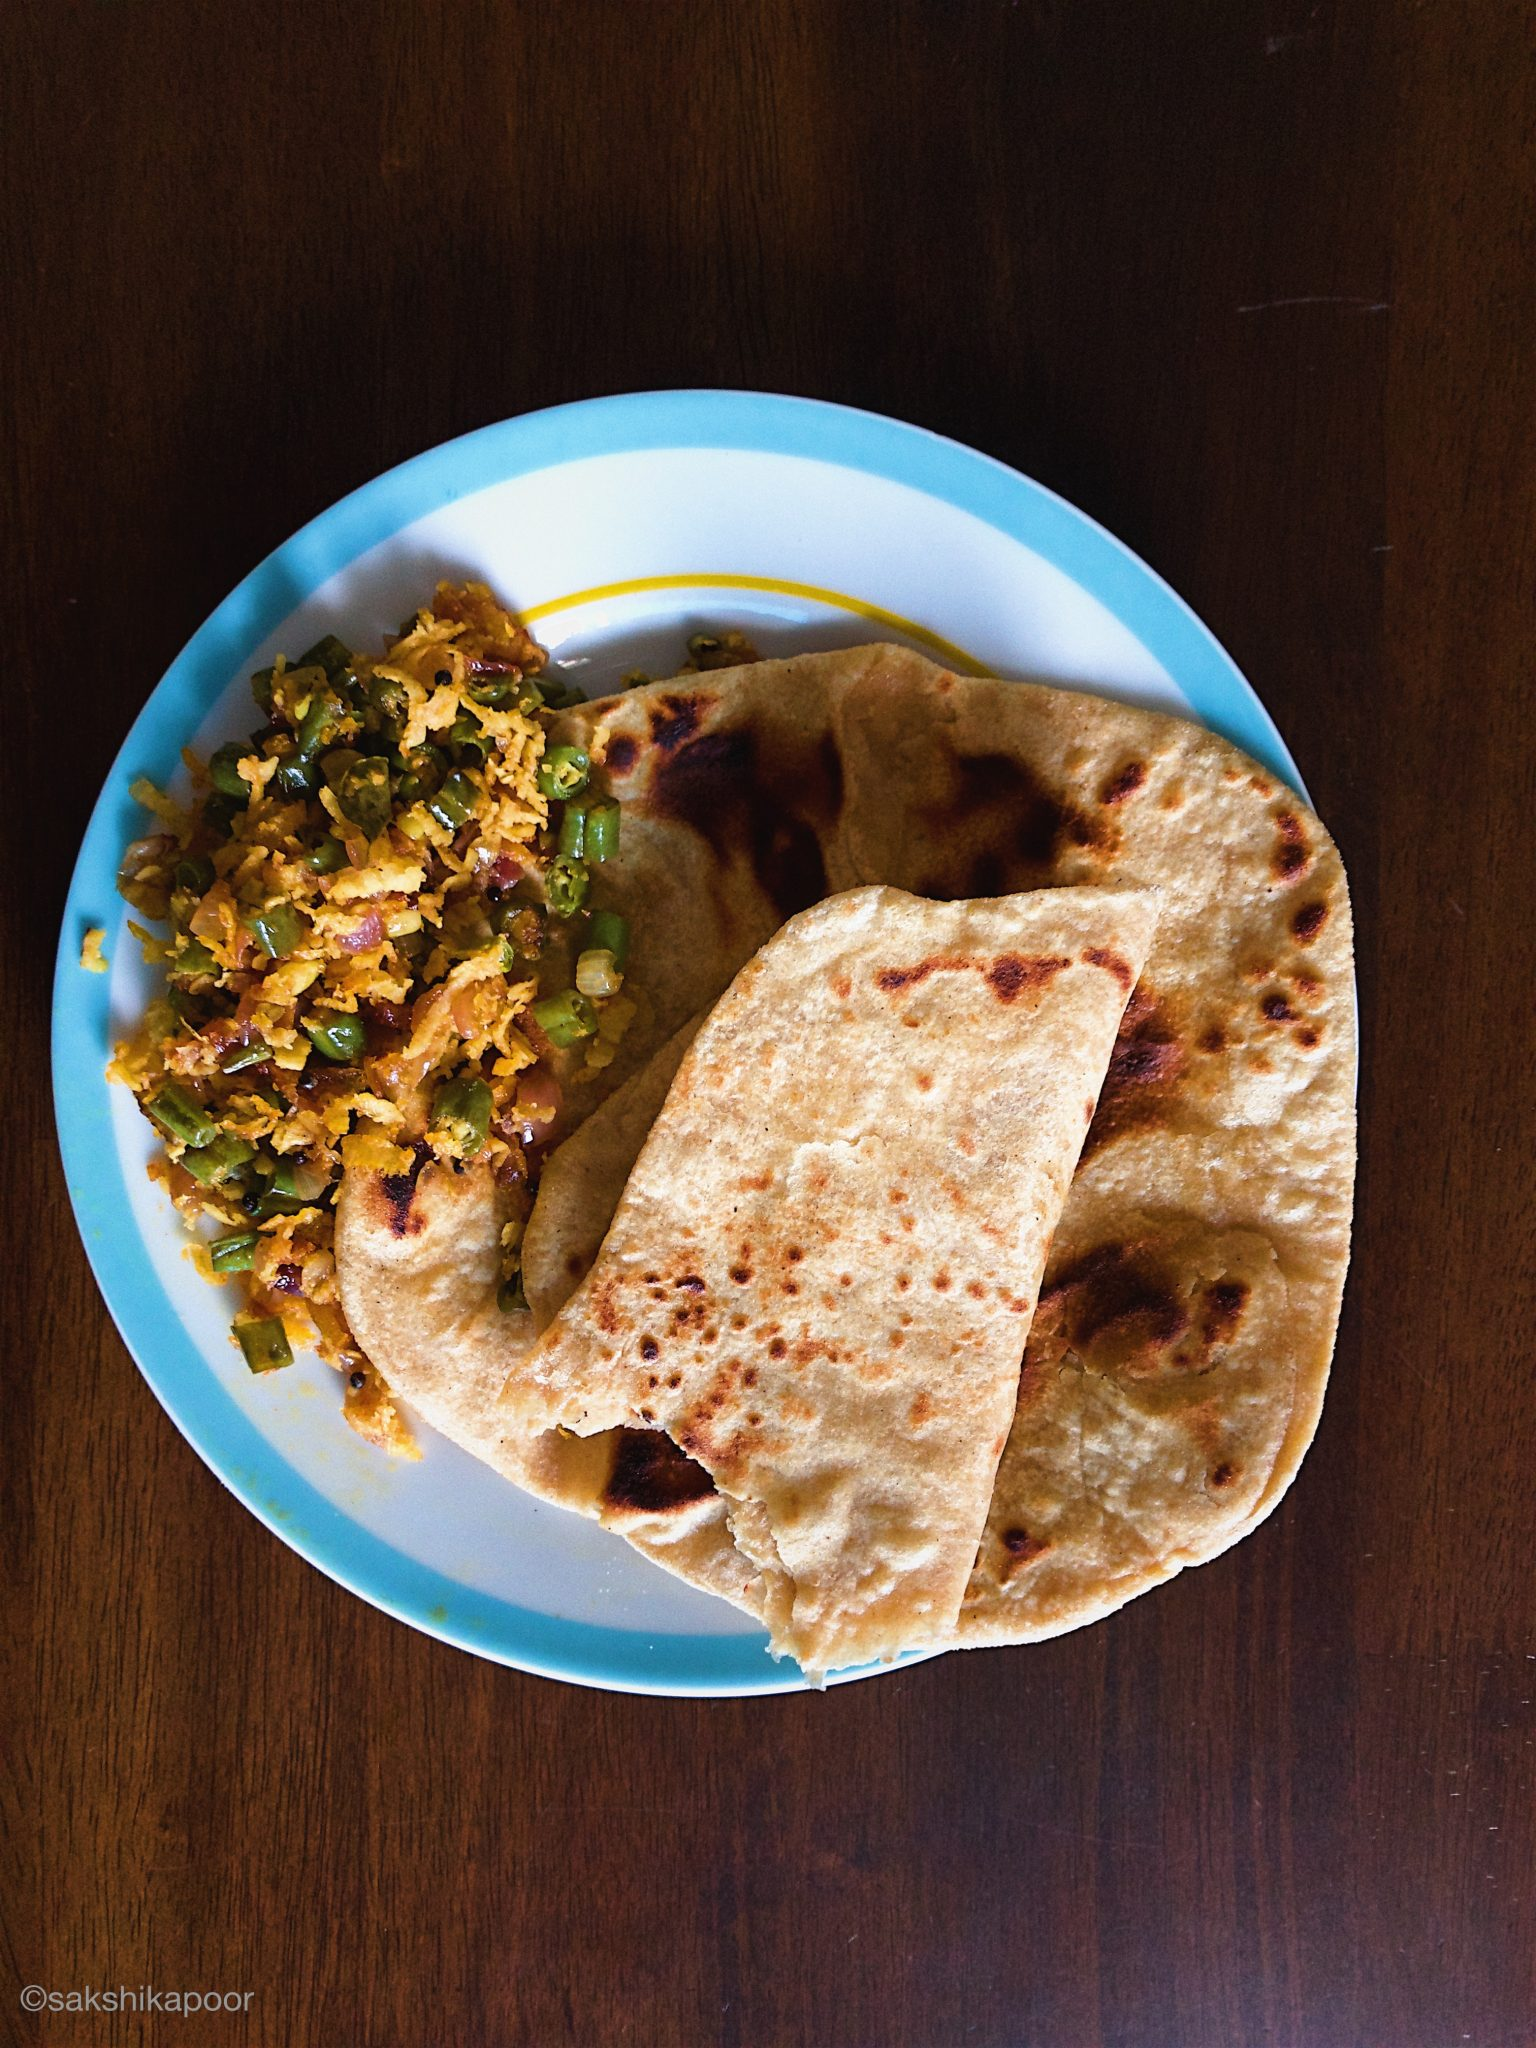 Rotis served with Beans thoran stir fry